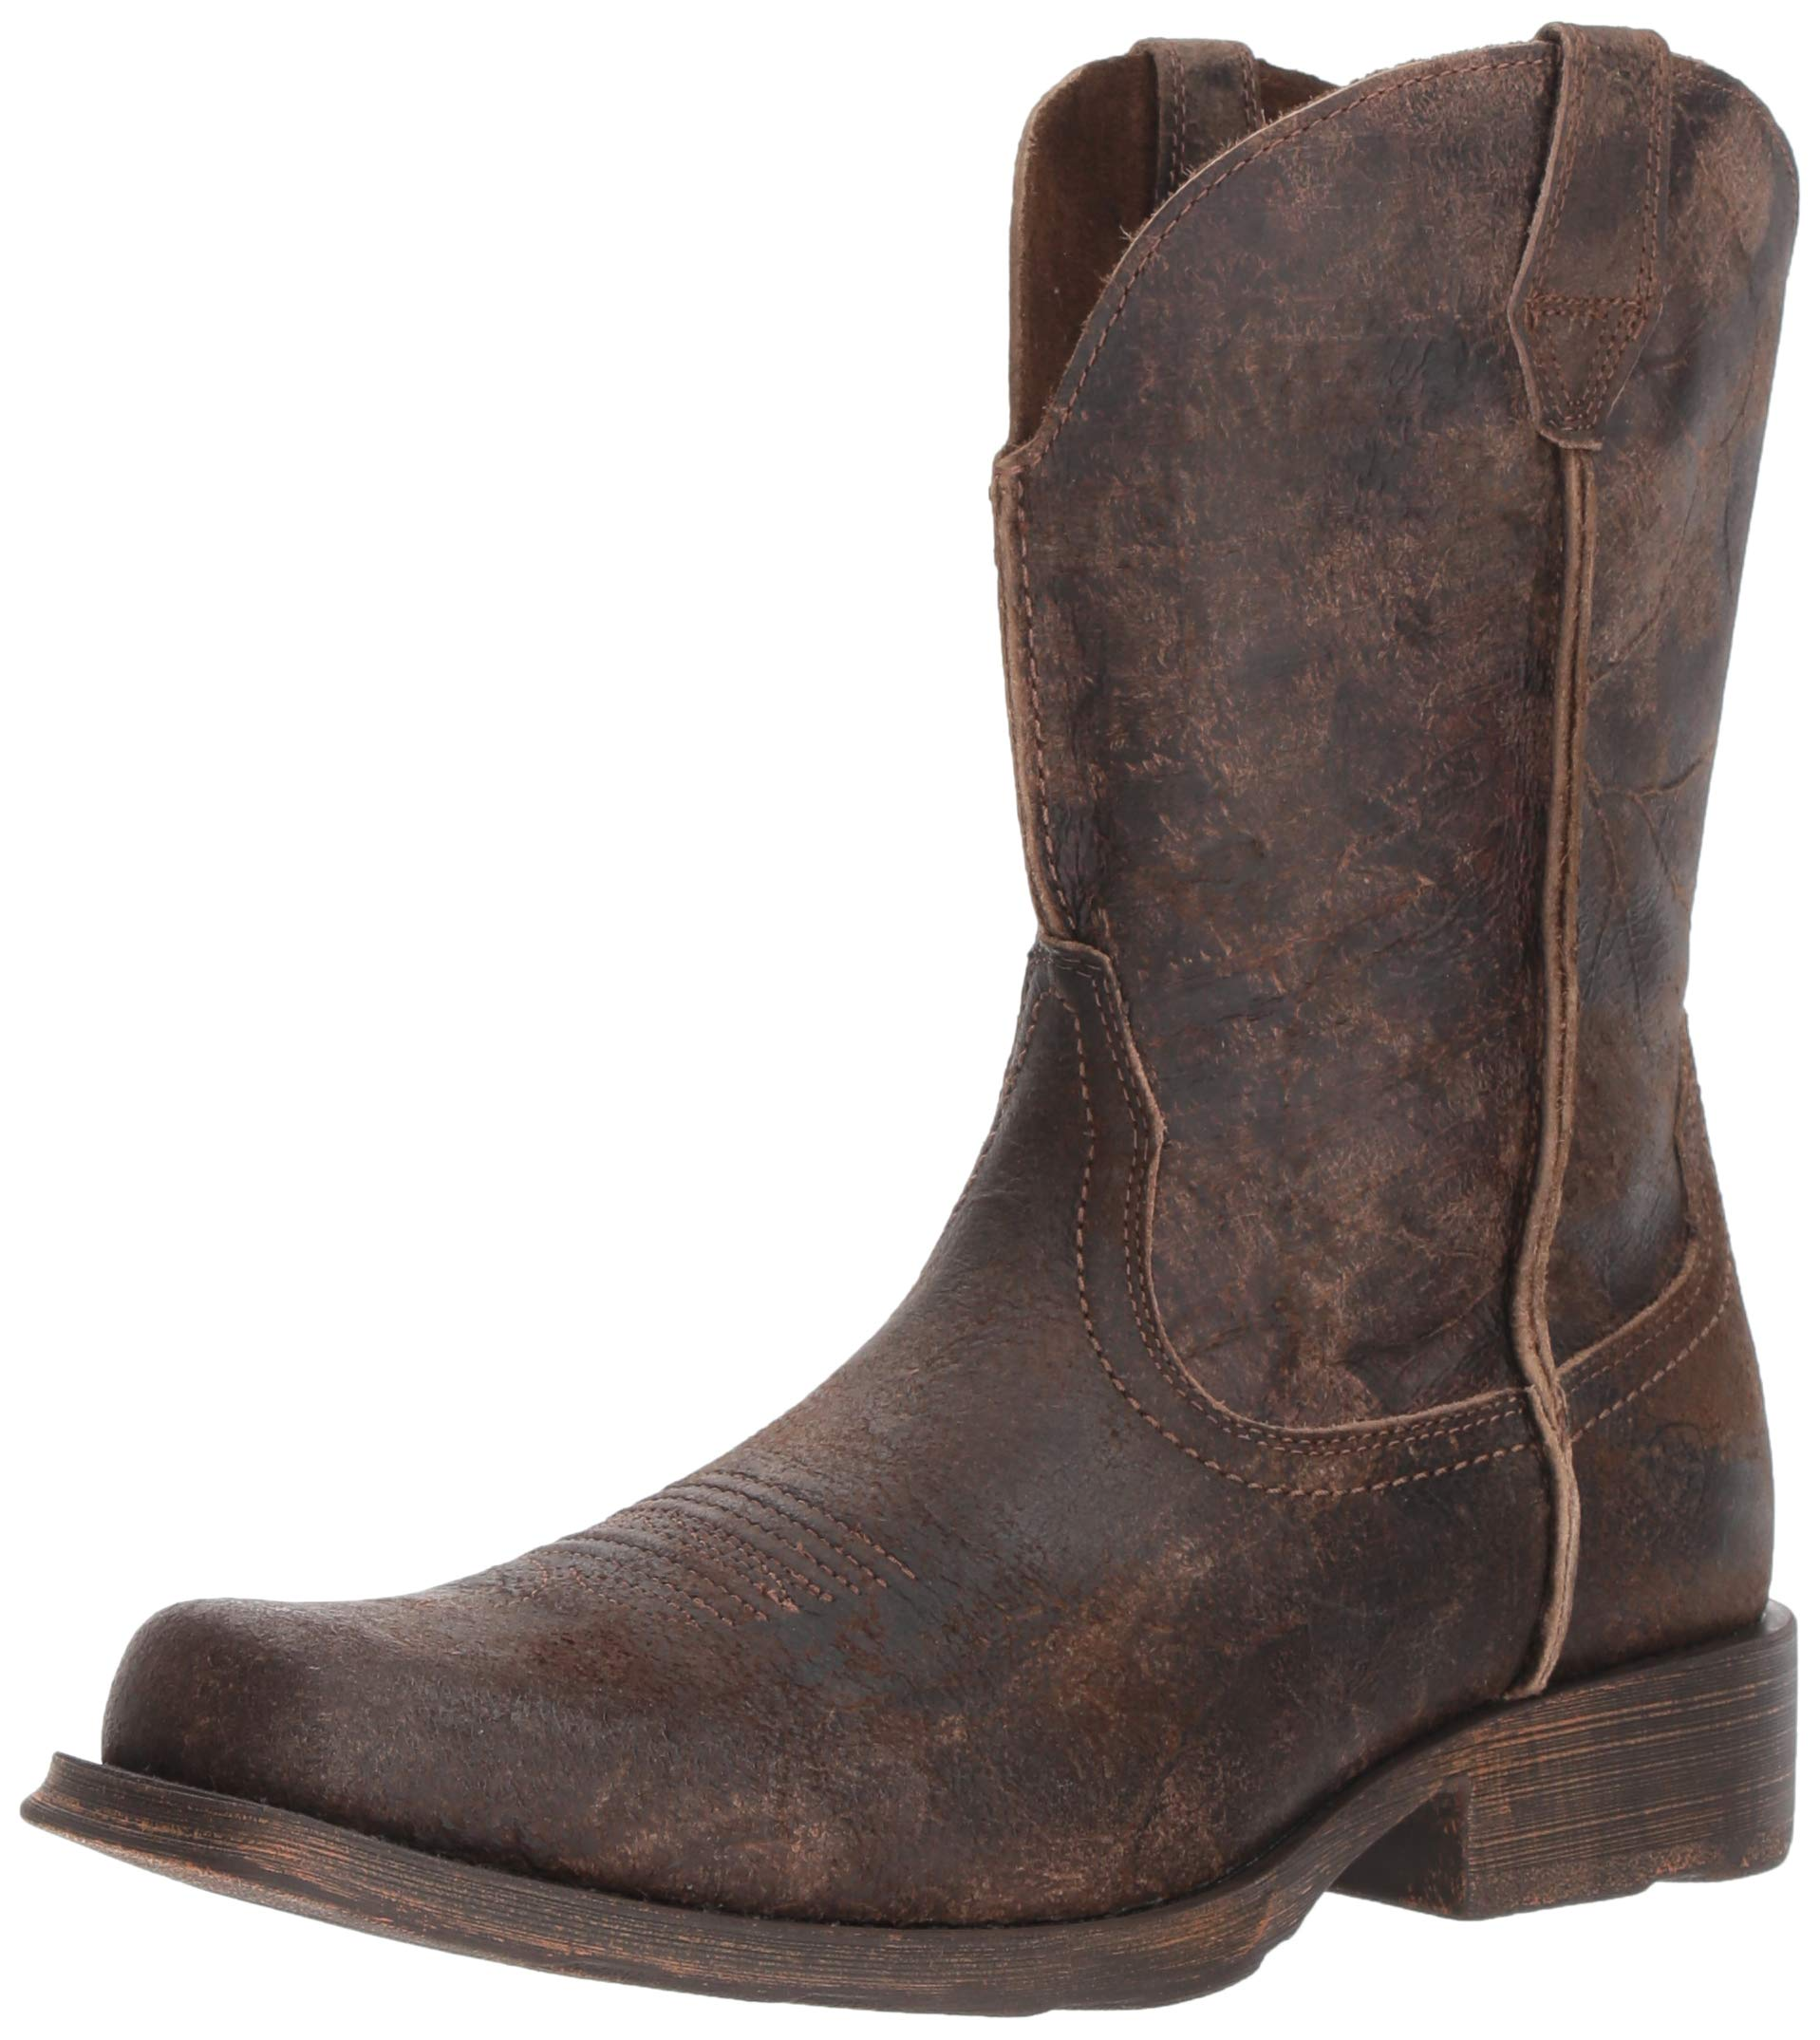 Ariat Men's Rambler Western Boot, Antiqued Grey, 13 2E US by ARIAT (Image #1)